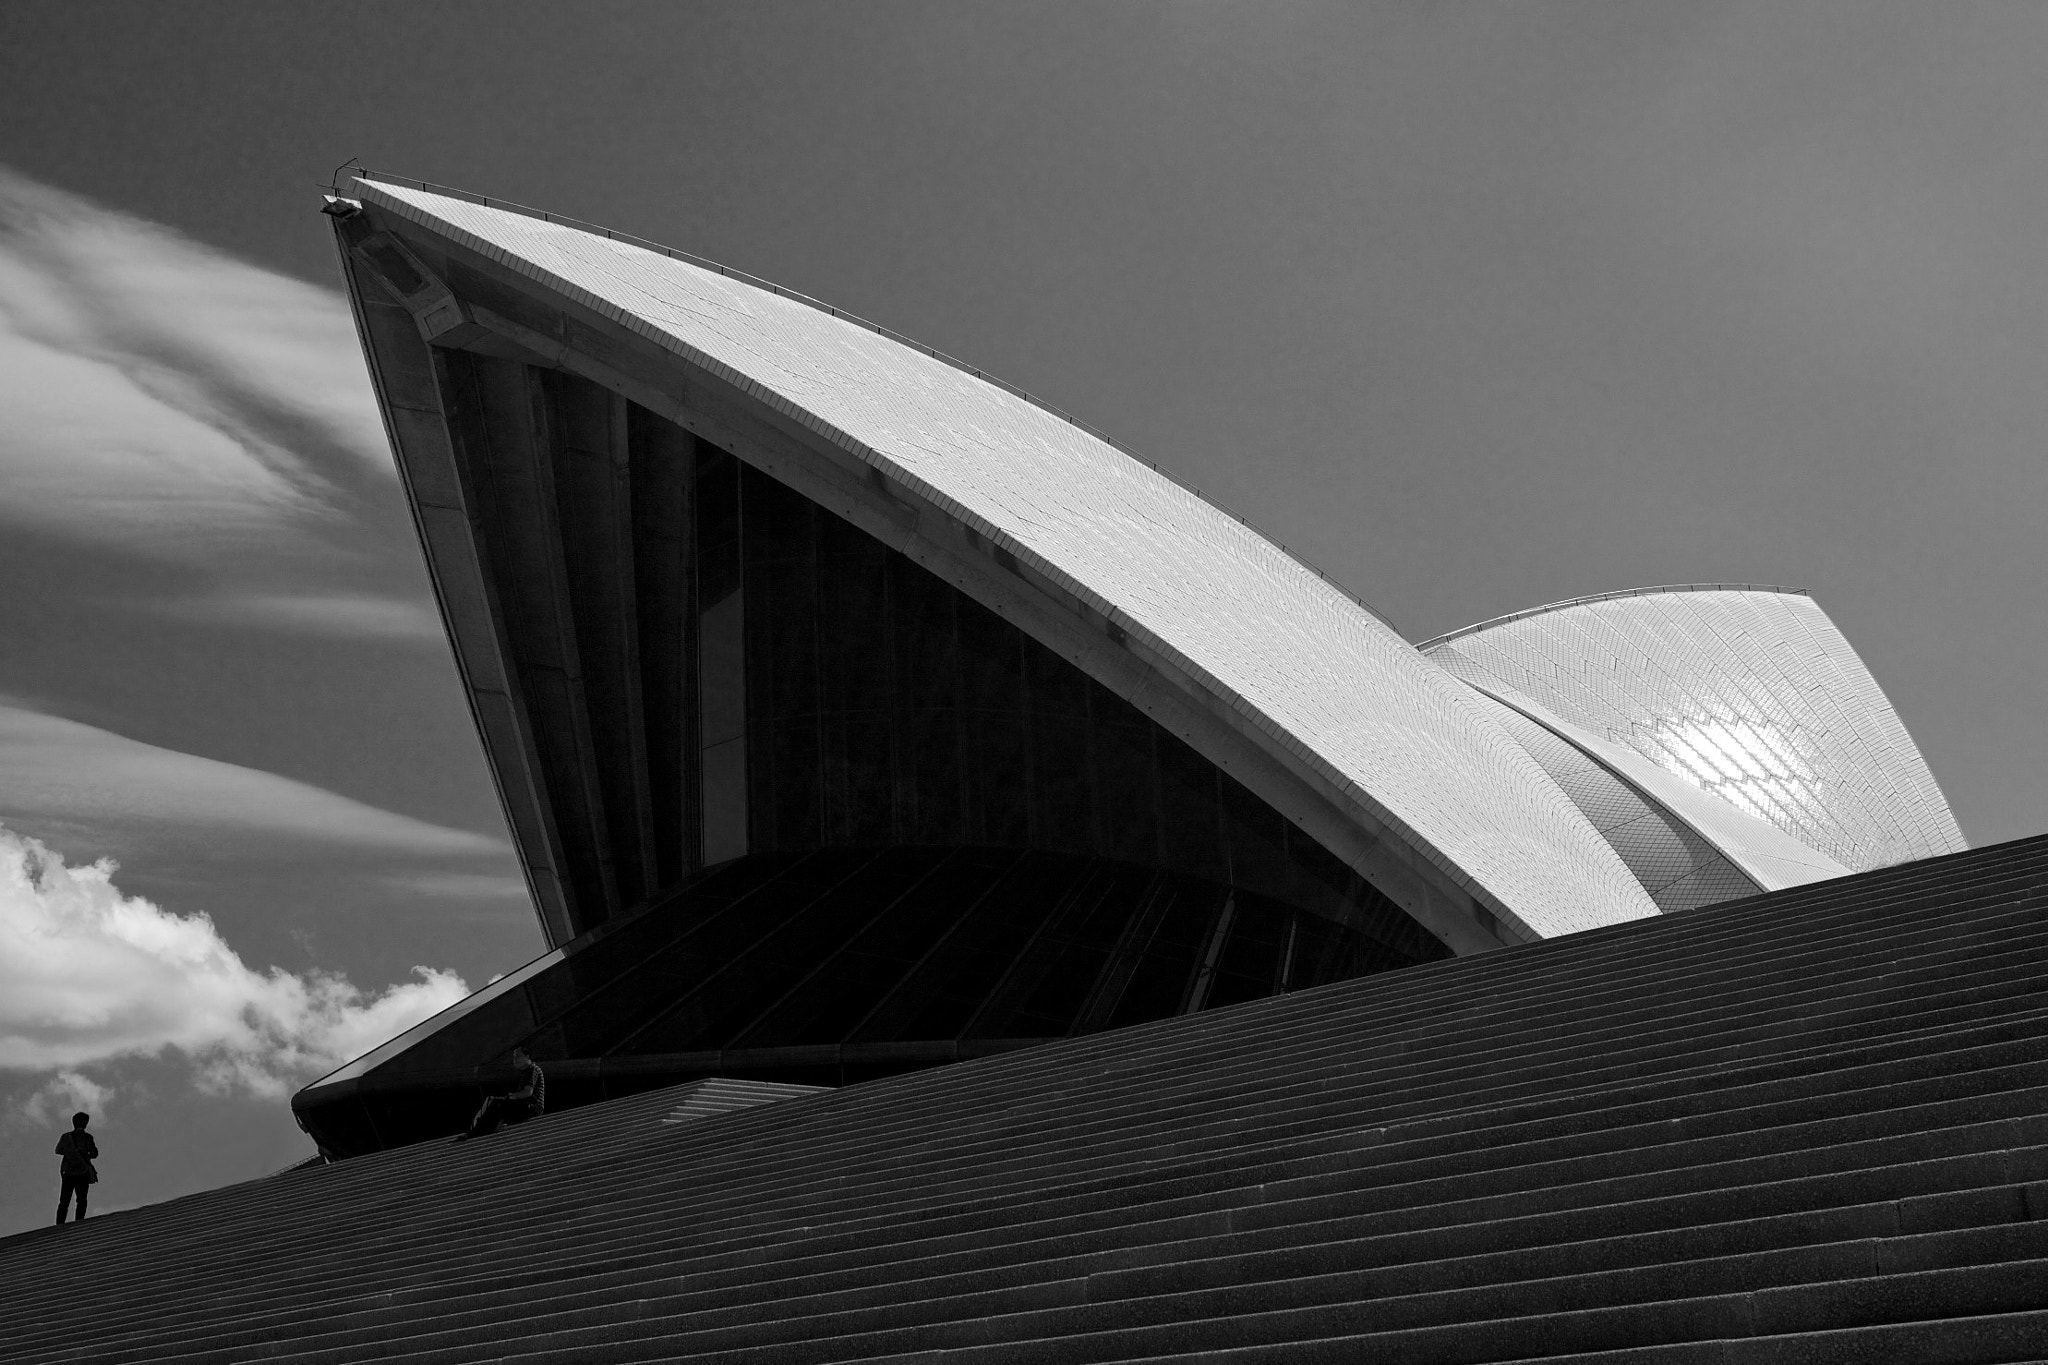 Photograph The Opera House by Federico Rampa on 500px